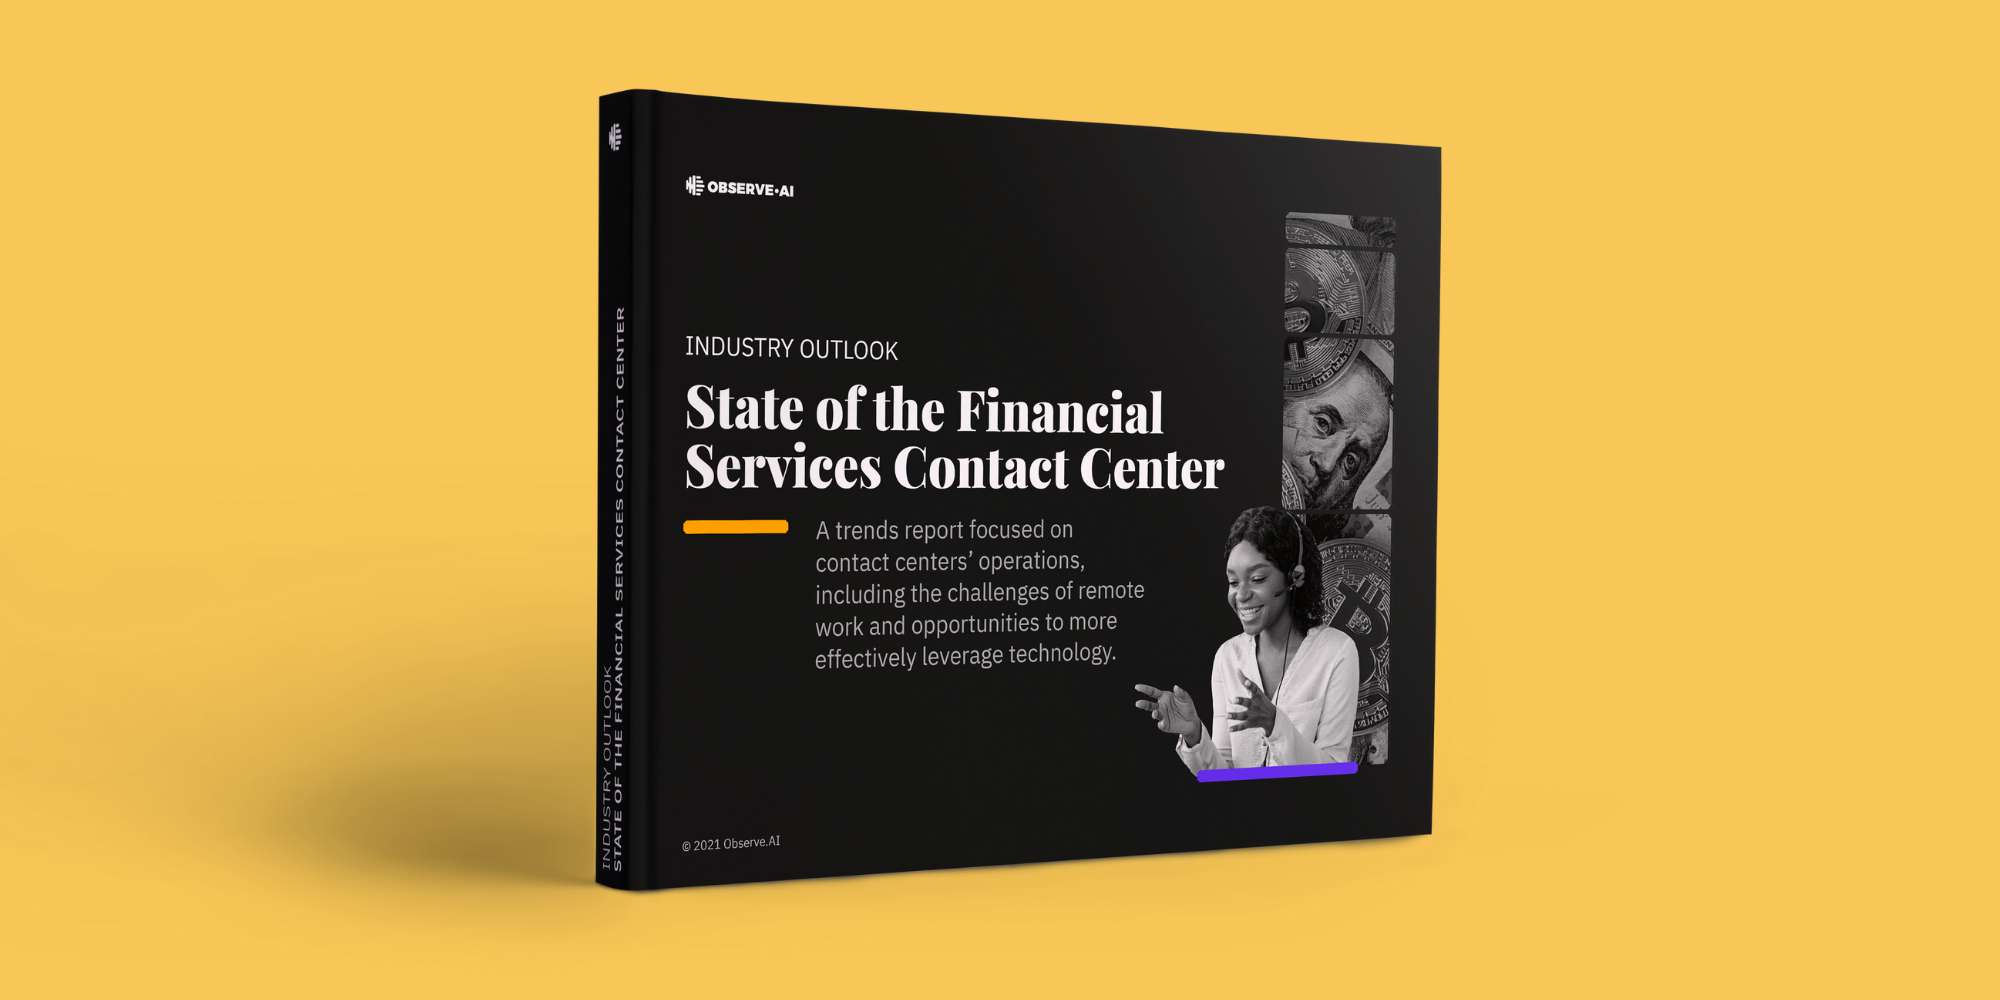 Industry Outlook: State of the Financial Services Contact Center